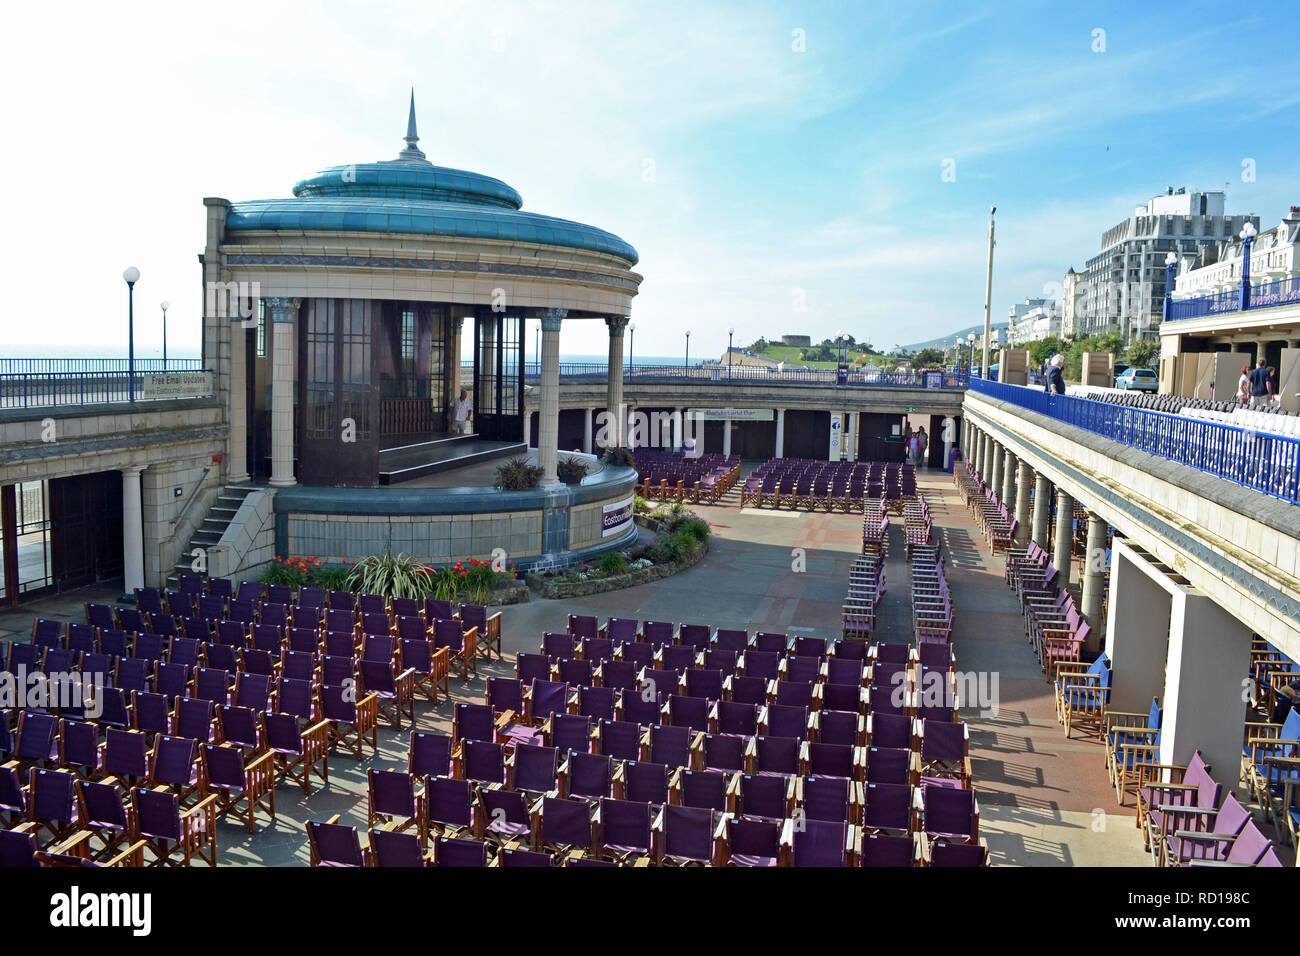 The Bandstand at Eastbourne, East Sussex, UK Stock Photo